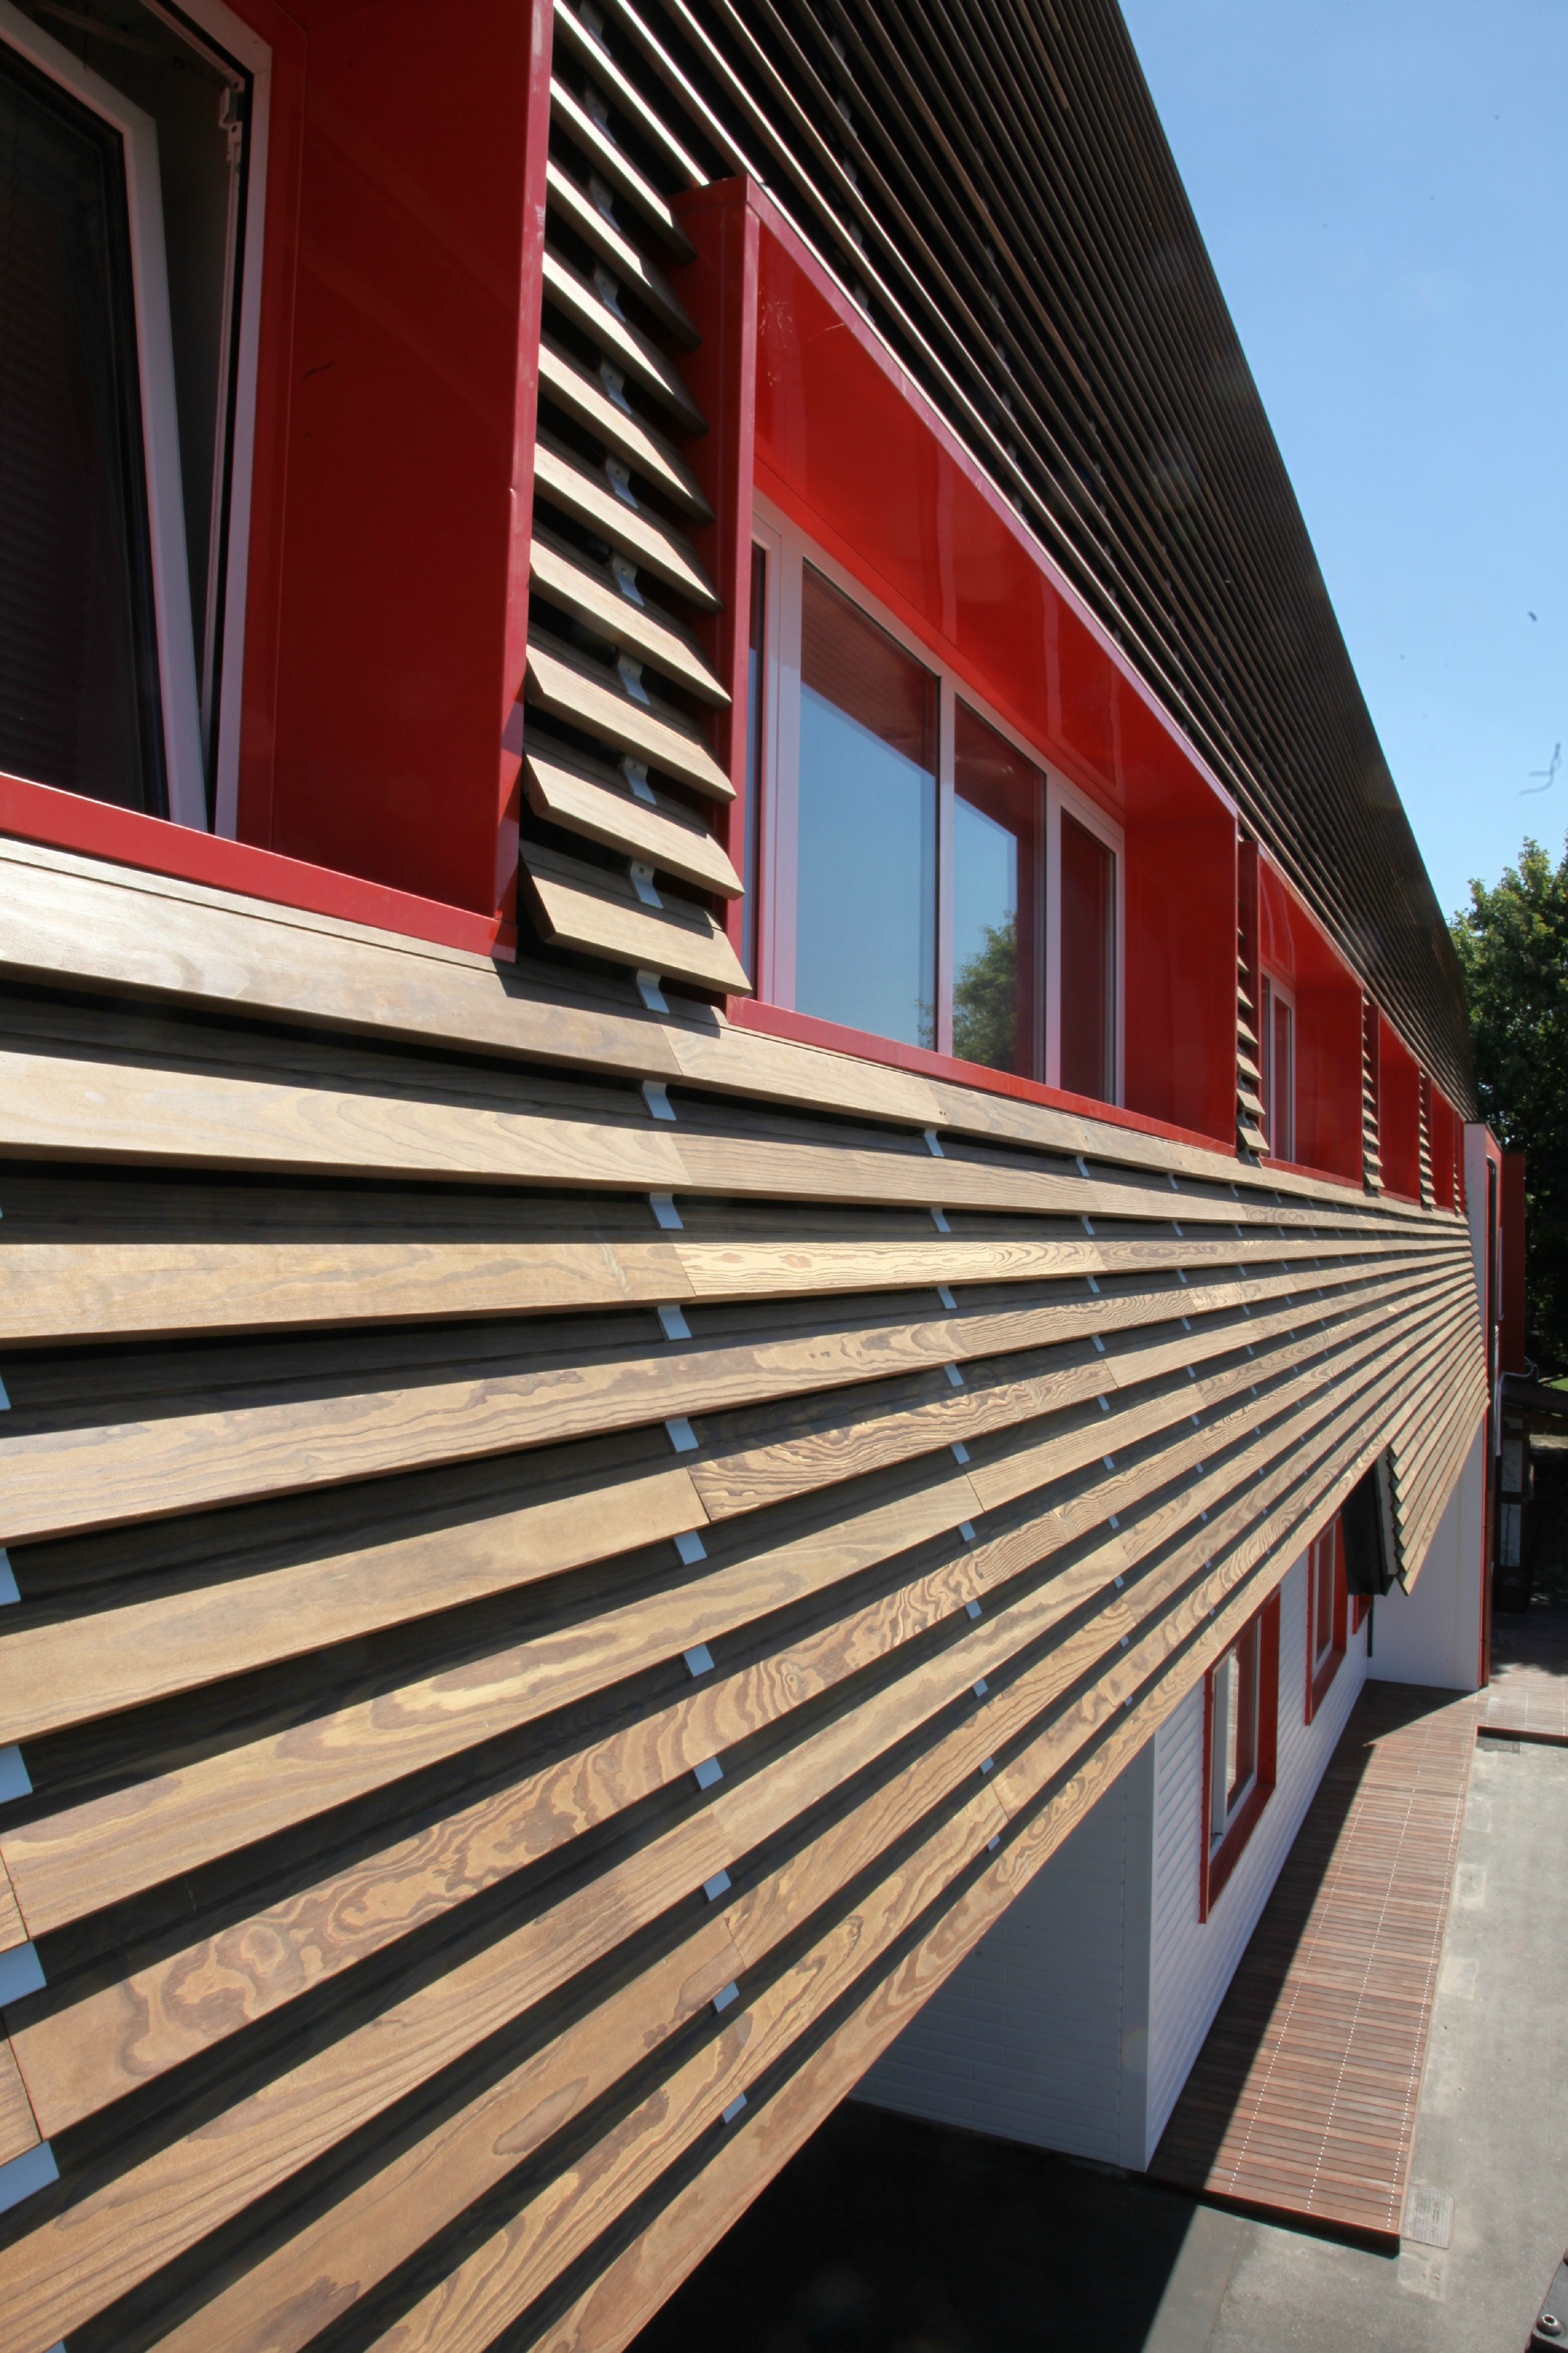 wood panel for facade solar shading 4sun by ravaioli legnami. Black Bedroom Furniture Sets. Home Design Ideas